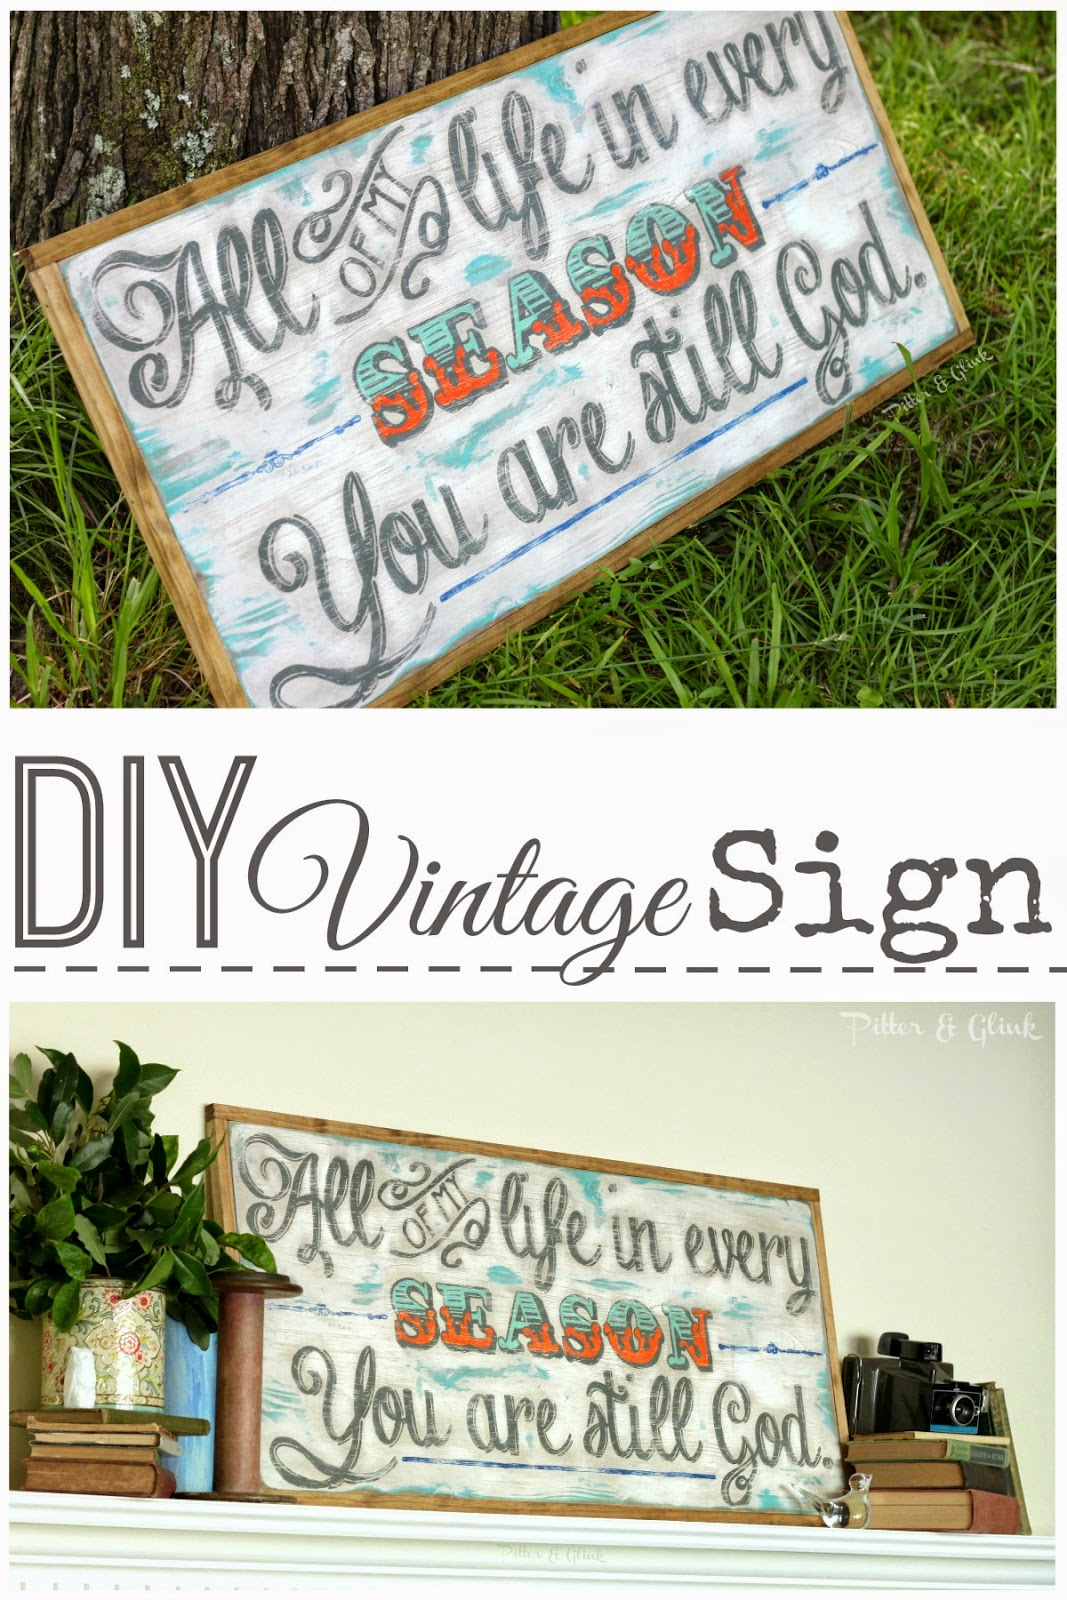 Create a vintage-looking sign from a plain wooden board pitterandglink.com #DIYart #walldecor